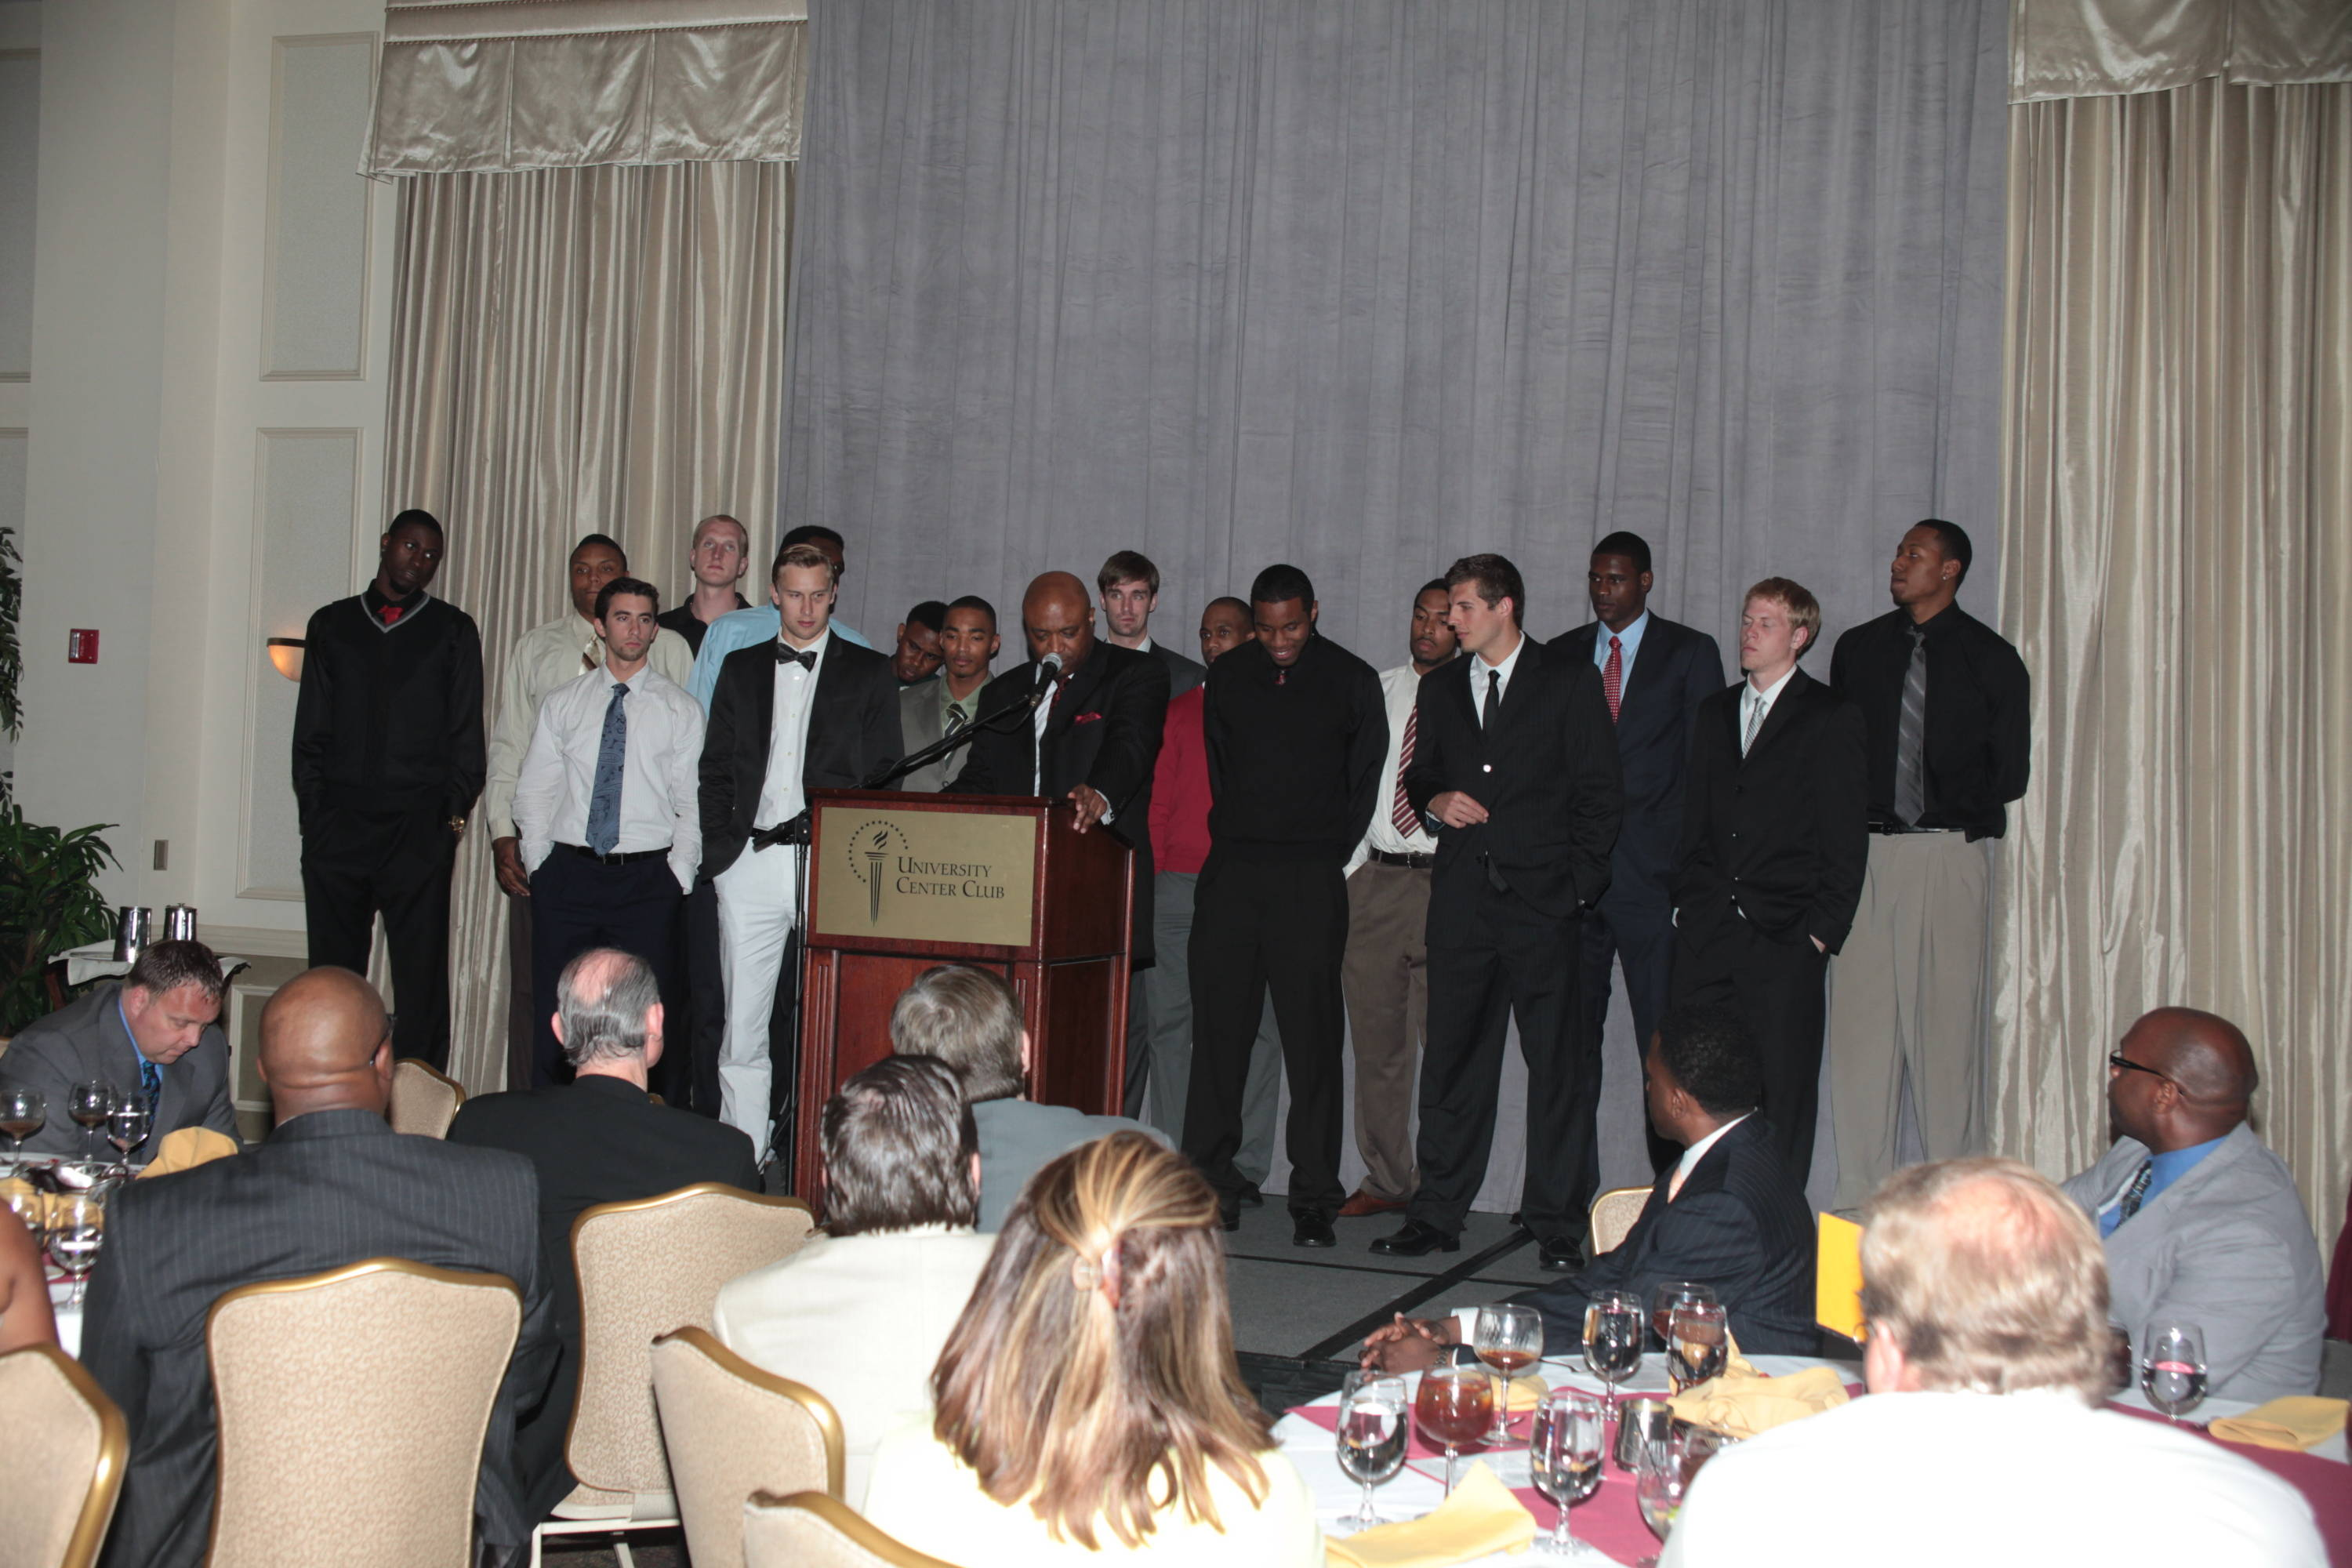 2011 Men's Basketball Banquet - Team Picture